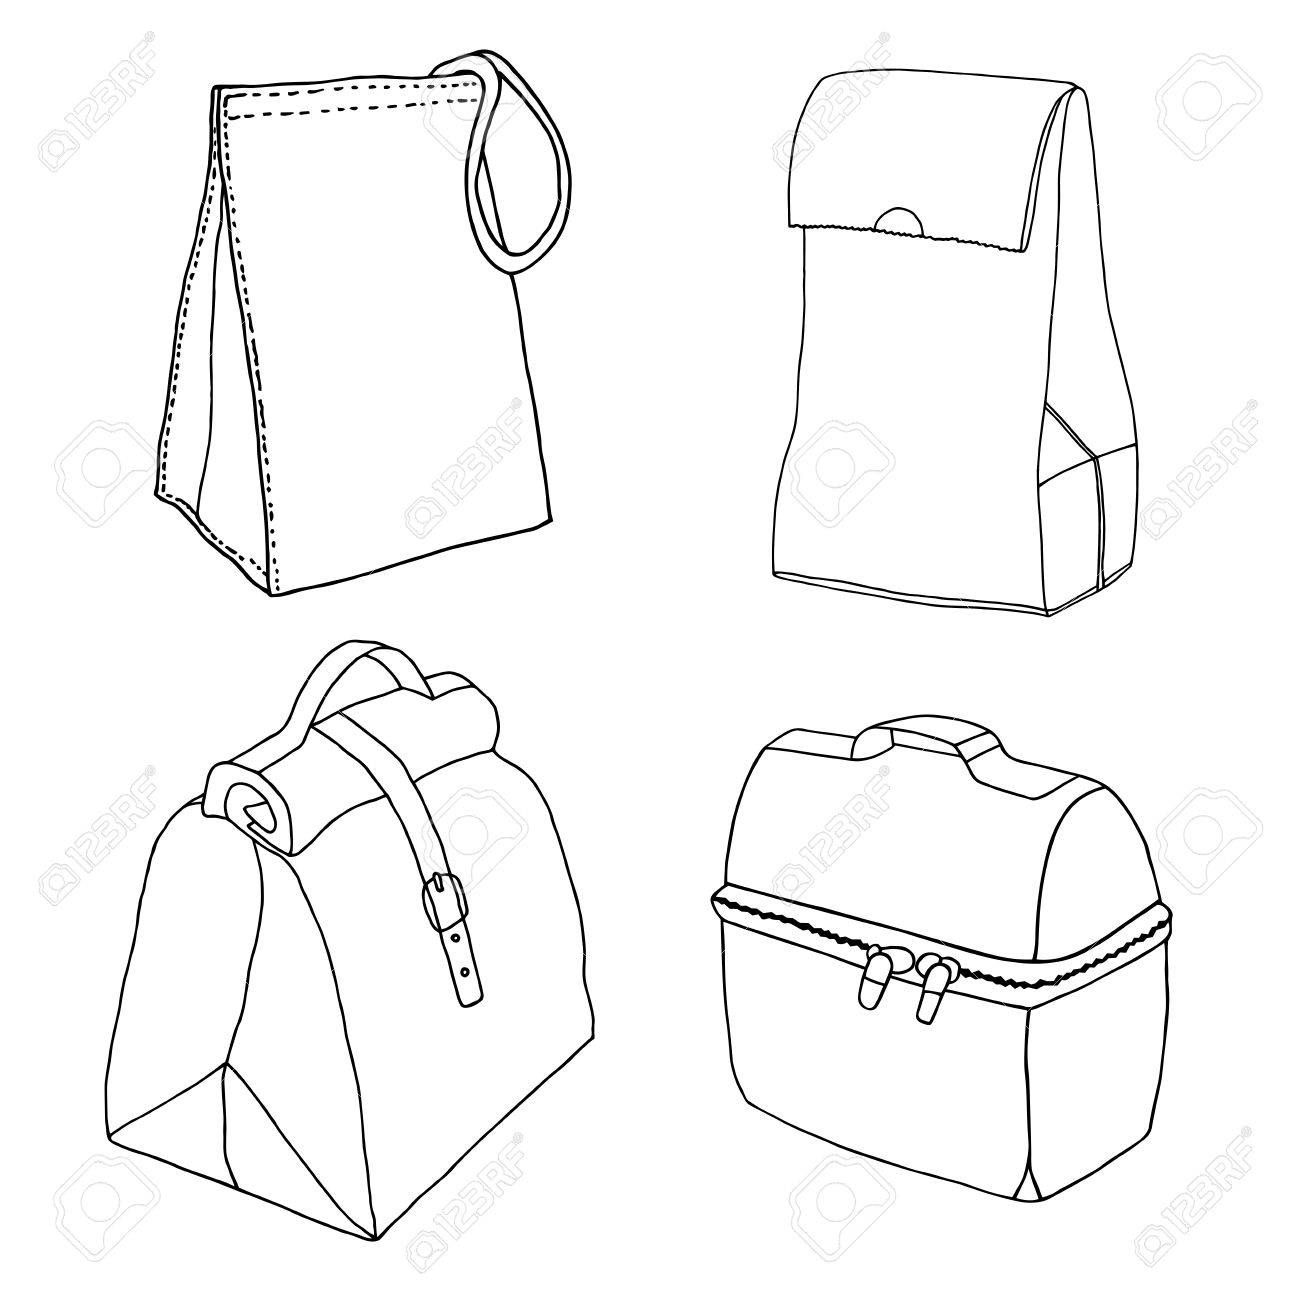 Lunch Bag Collection Easy Box Concepts Various Food Bags And Boxes